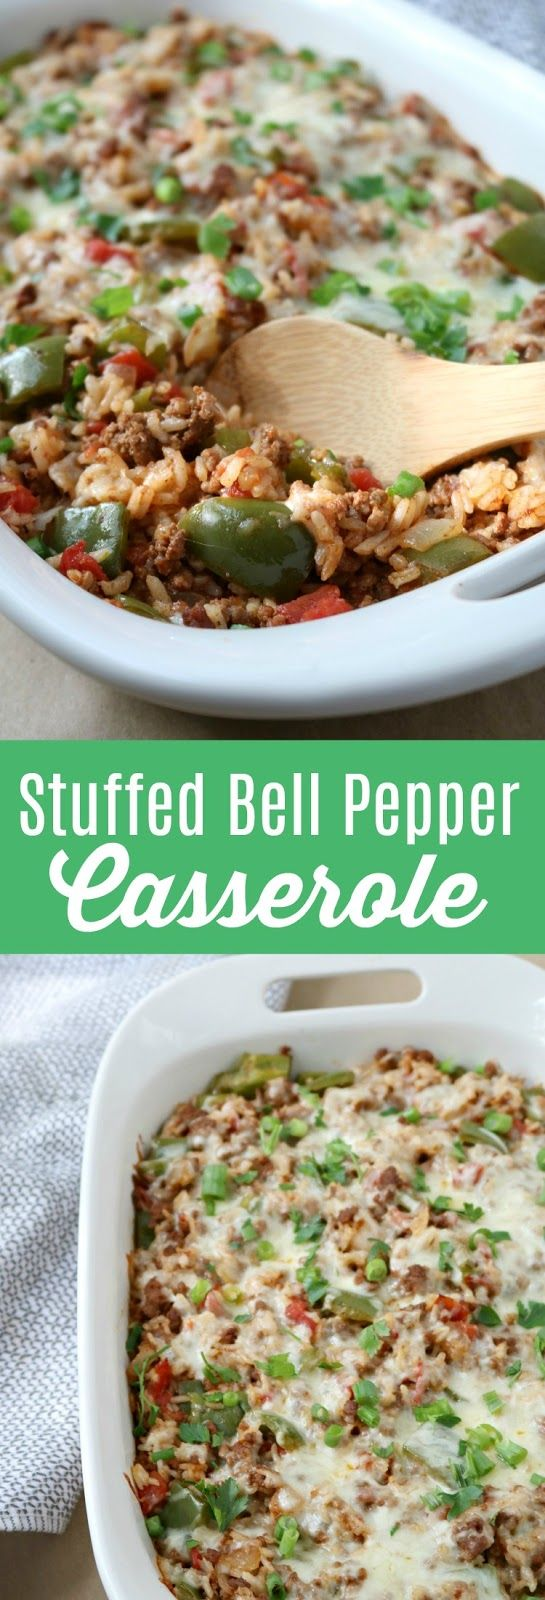 Stuffed Bell Pepper Casserole Cooking And Recipes Stuffed Peppers Easy Casserole Recipes Recipes